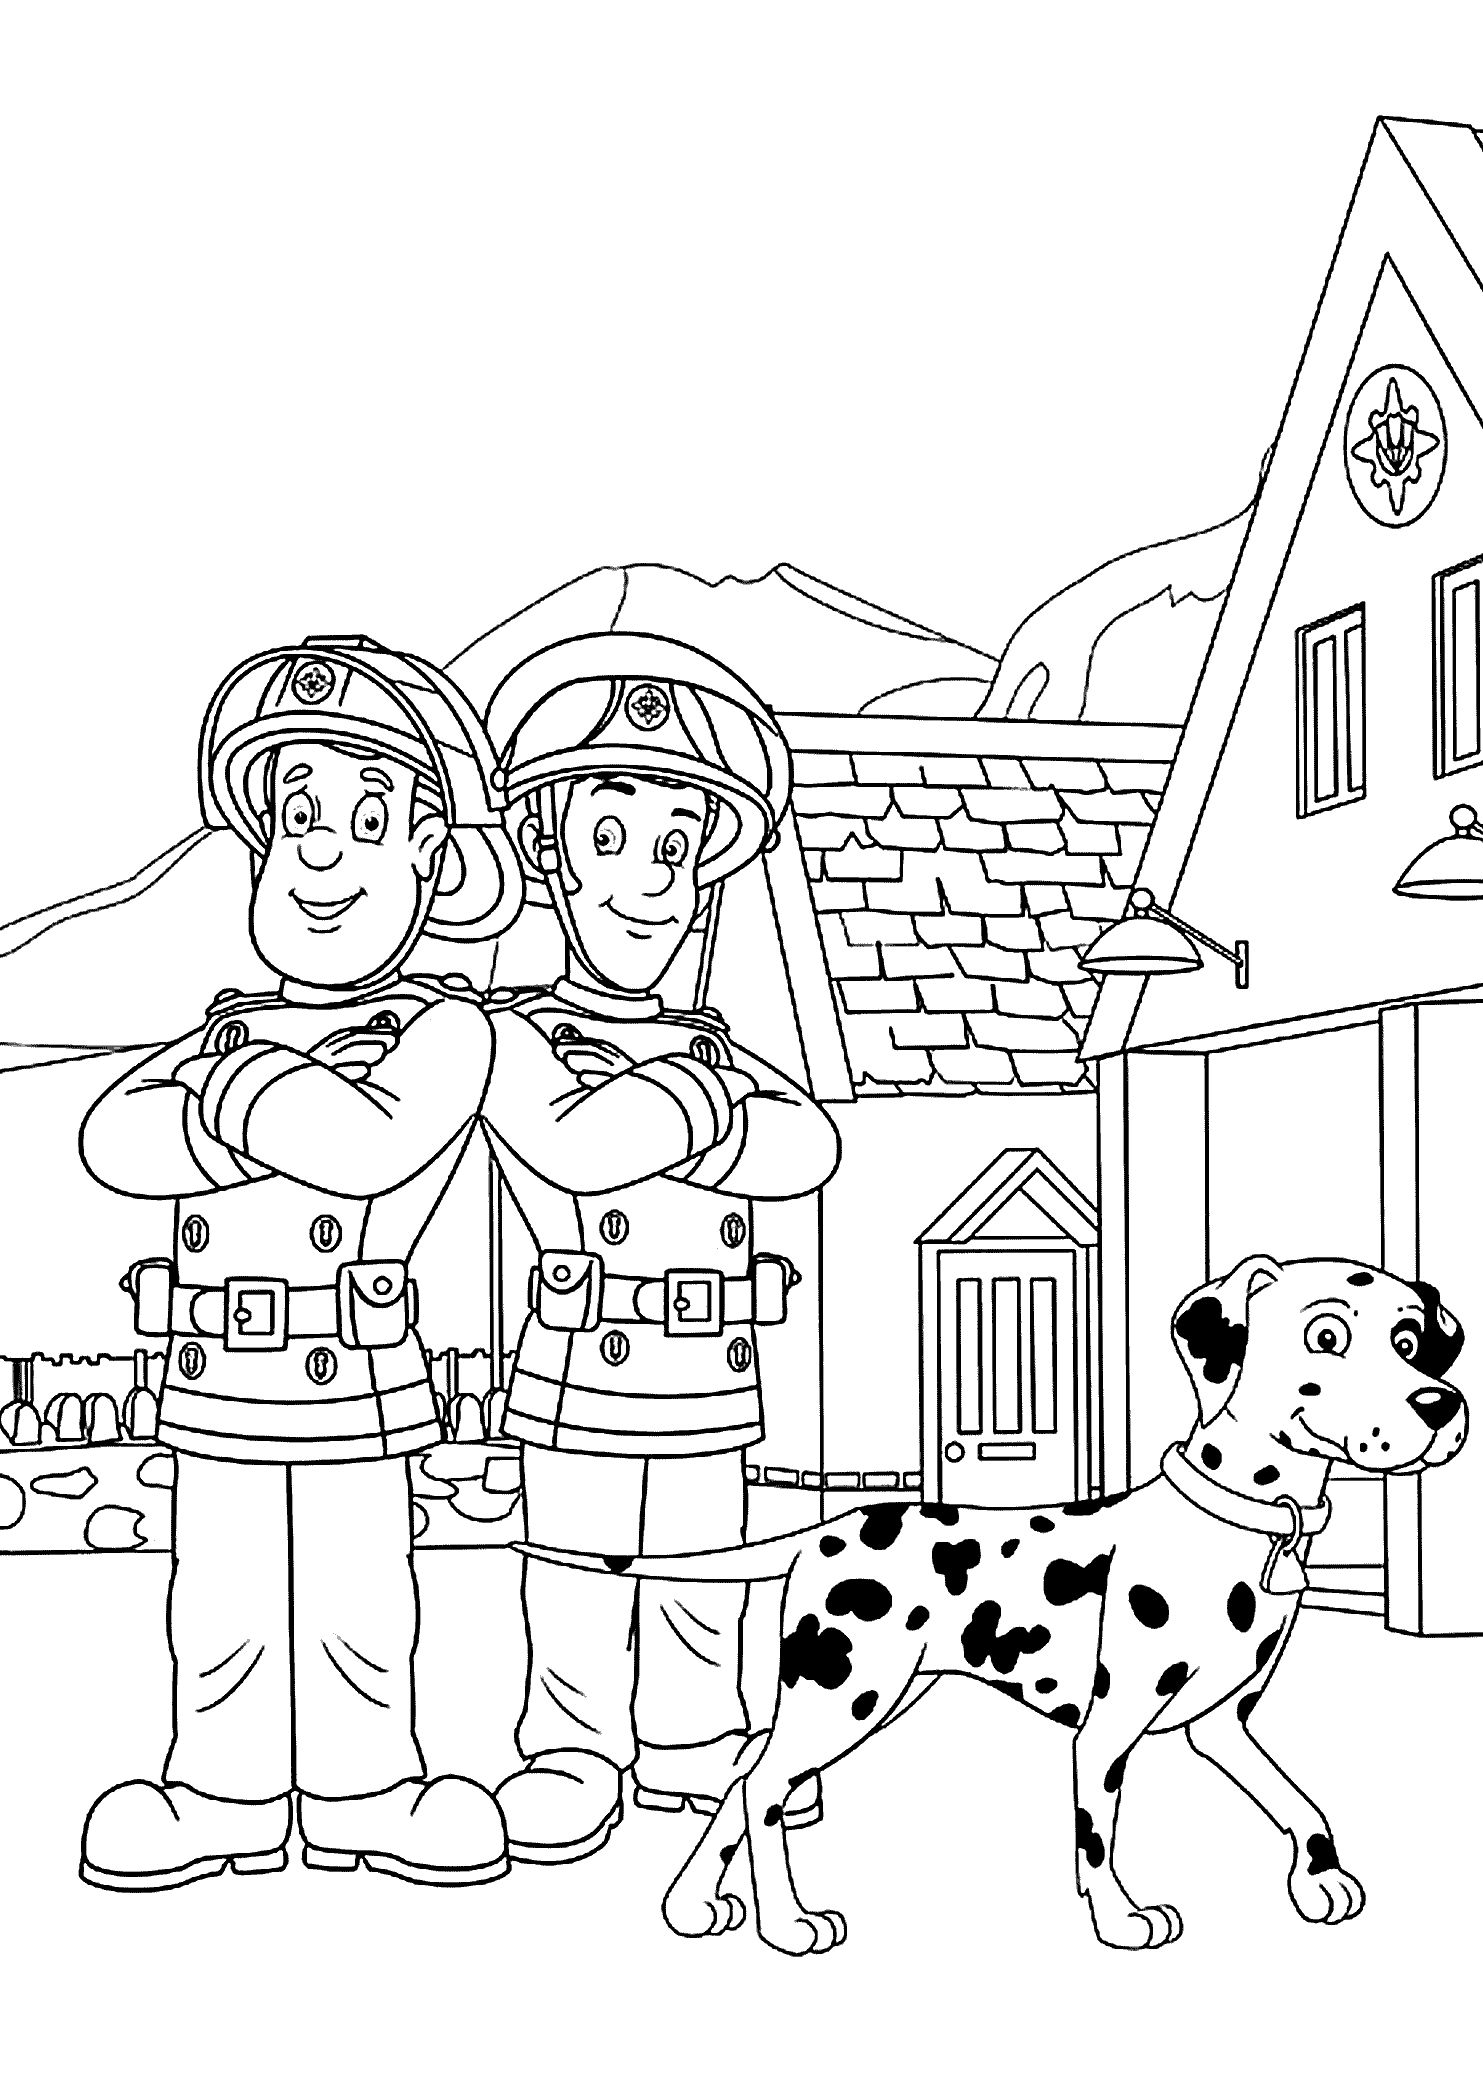 Sam Der Feuerwehrmann Ausmalbilder : Free Printable Color Book Pages Santa Fireman Fireman Sam Coloring